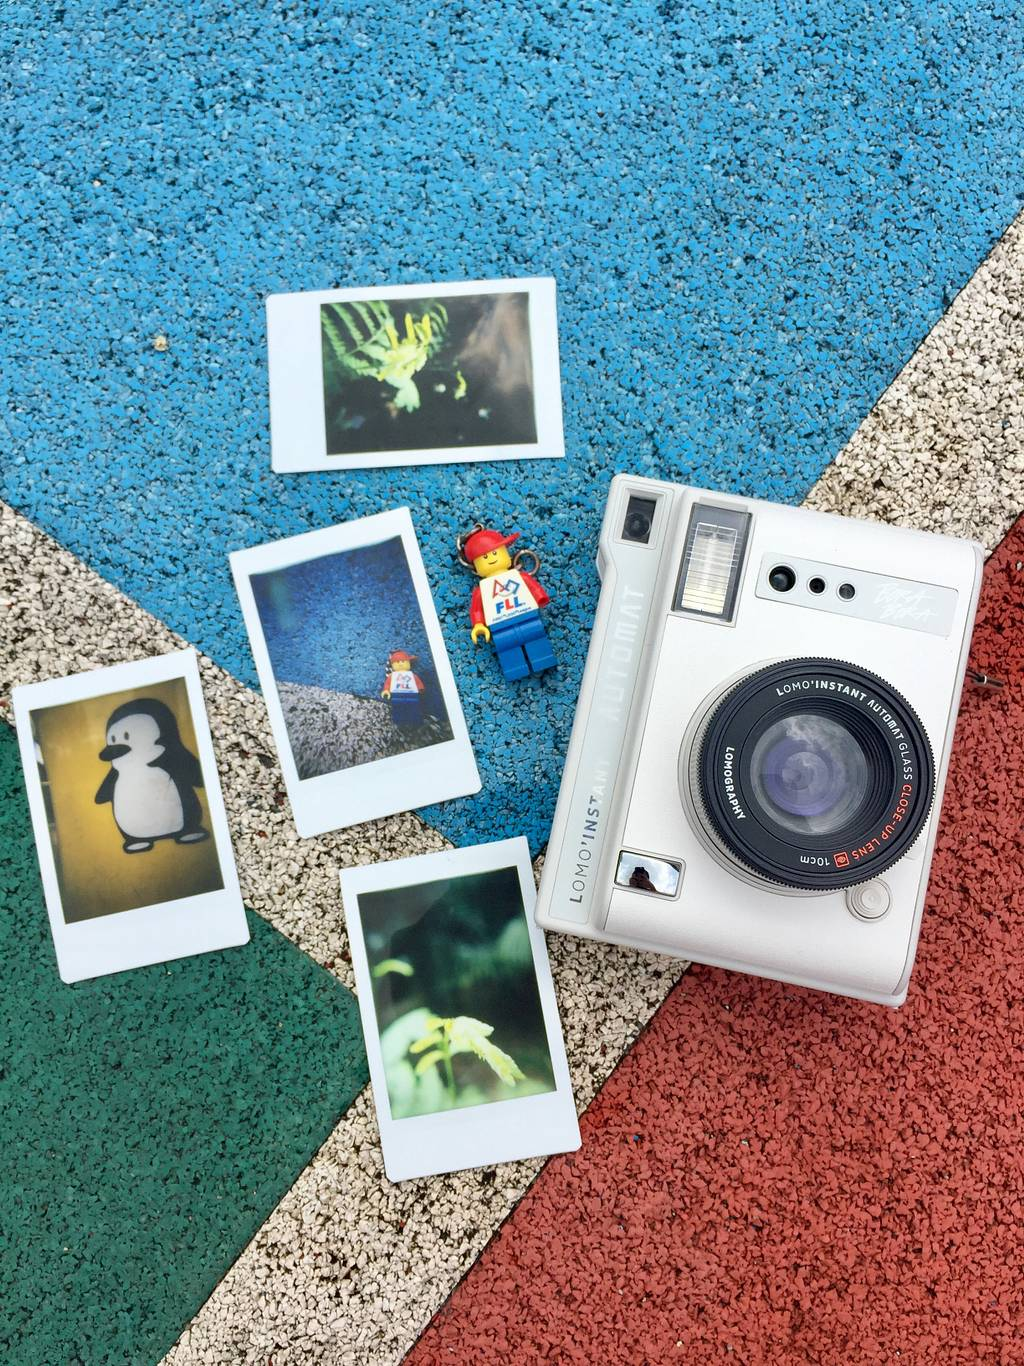 Capture The World Through A Child's Eyes with the Lomo'Instant Automat